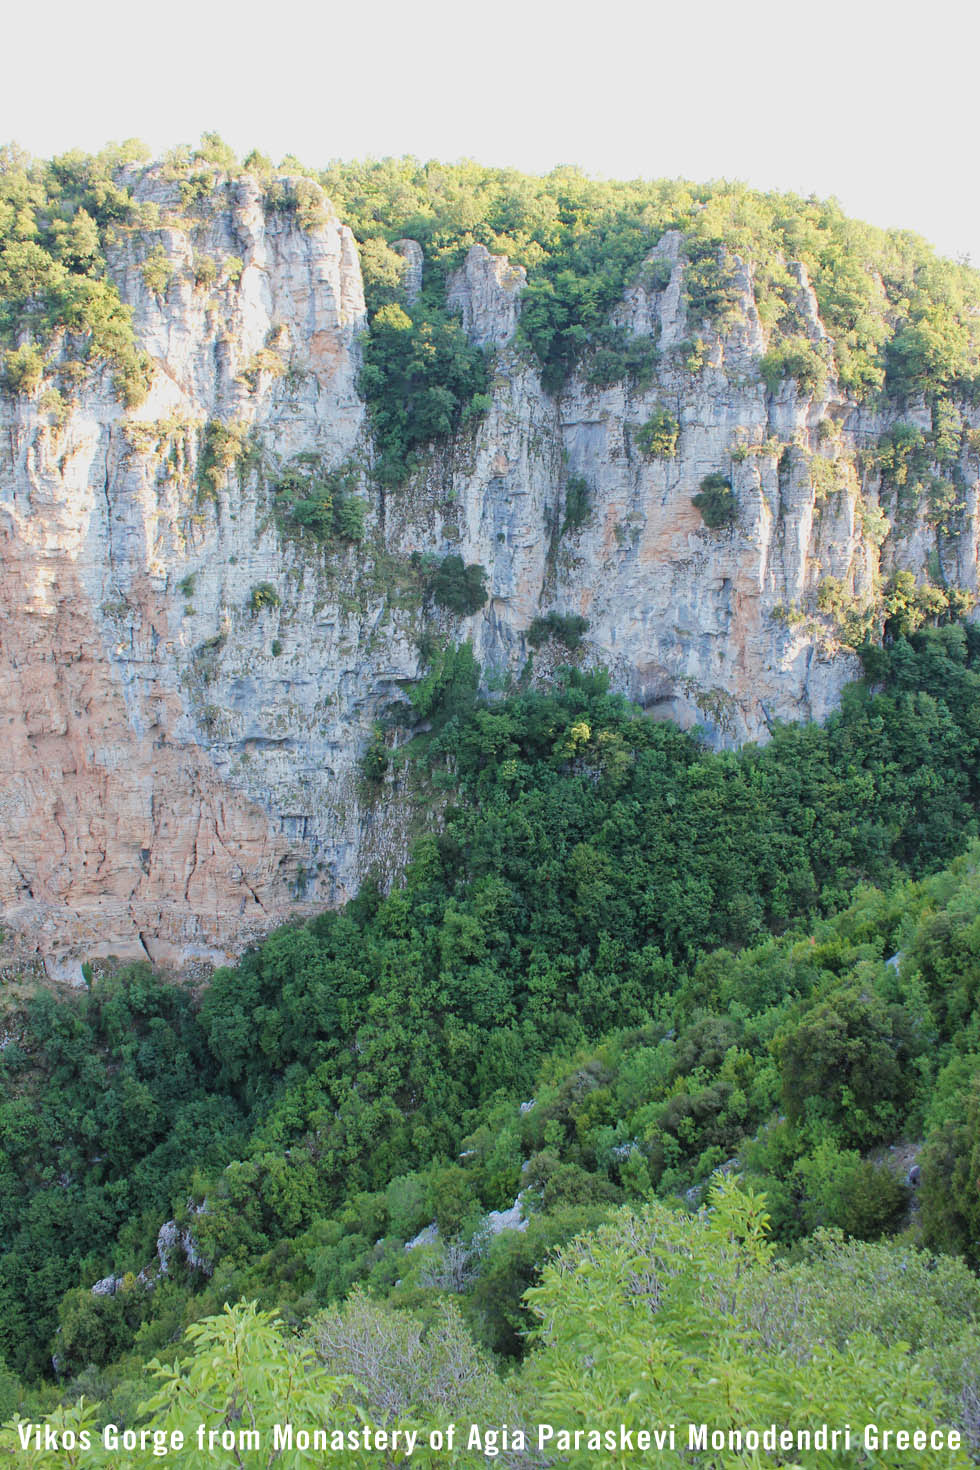 Vikos Gorge view from Monastery Agia Perakevi